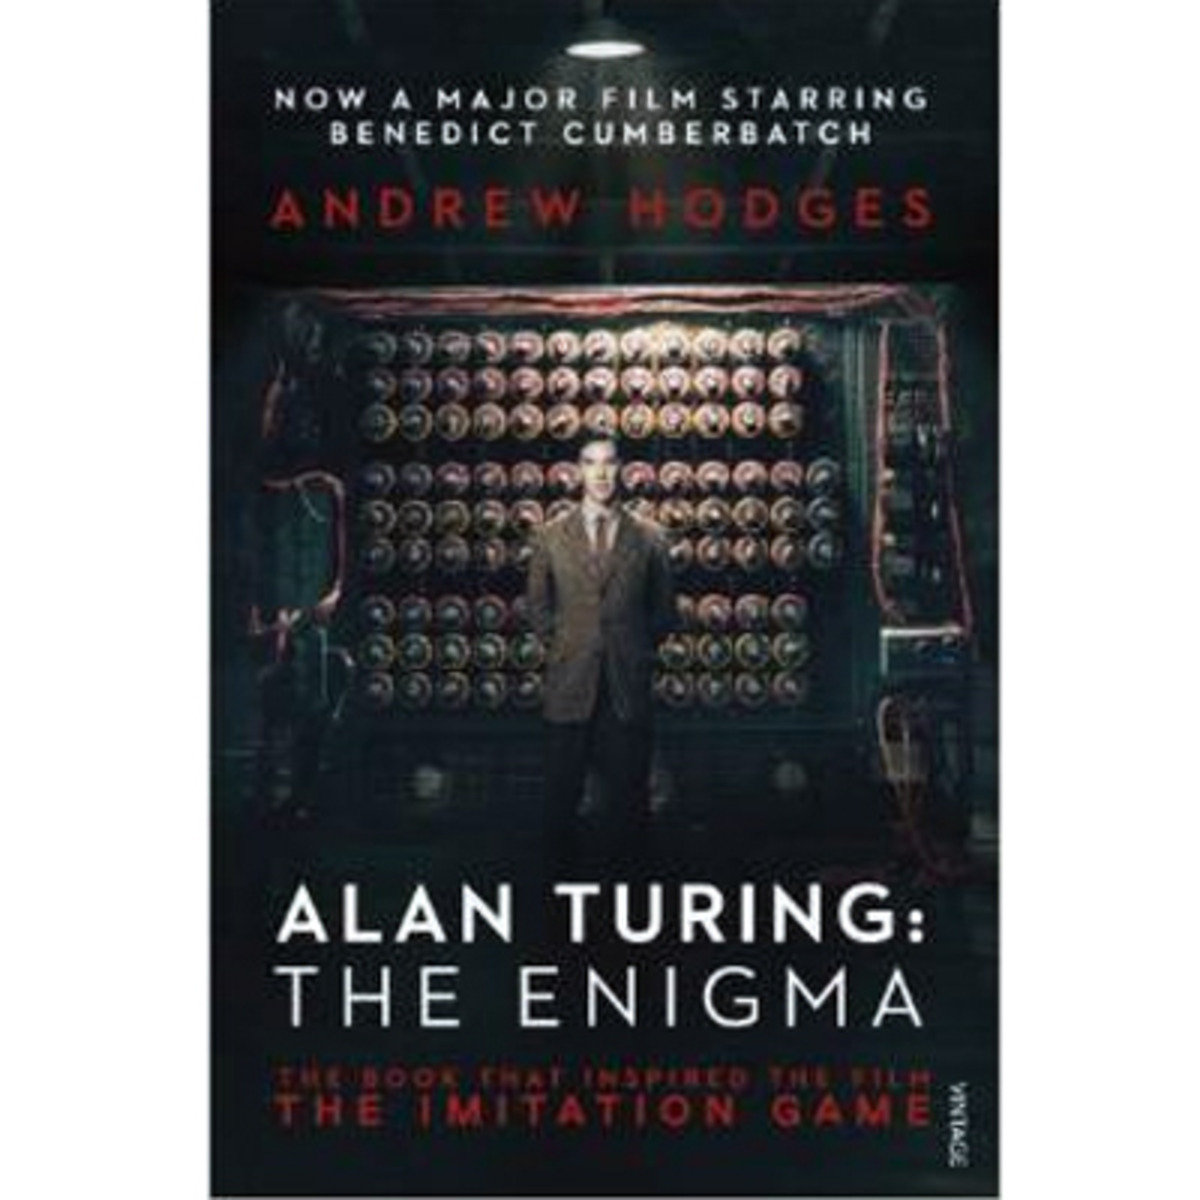 ALAN TURING: THE ENIGMA 9781784700089